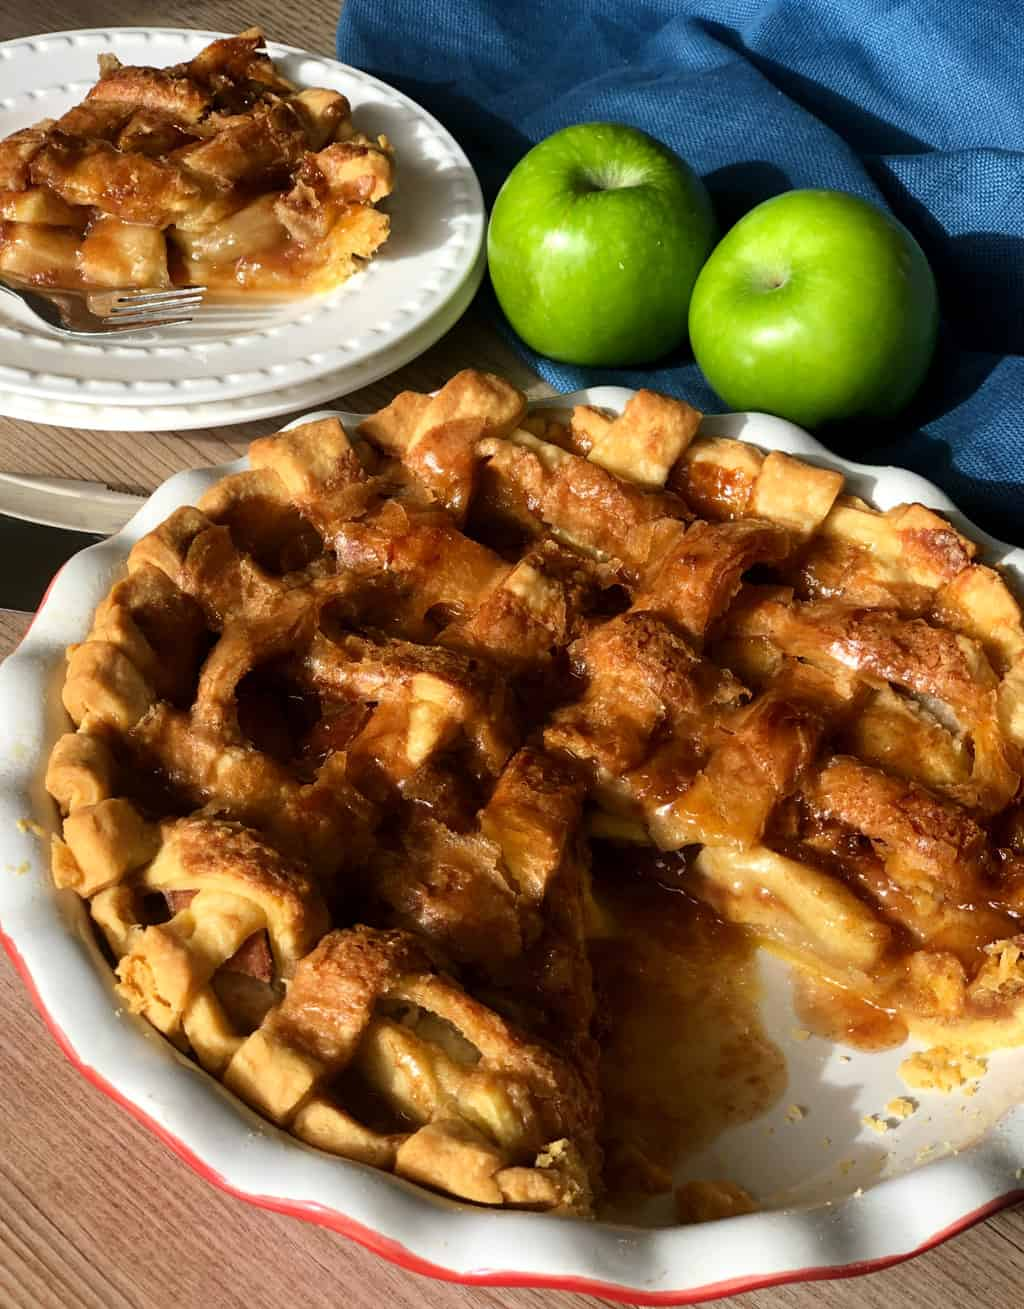 Delicious Caramel Apple Pie - sliced and ready to eat